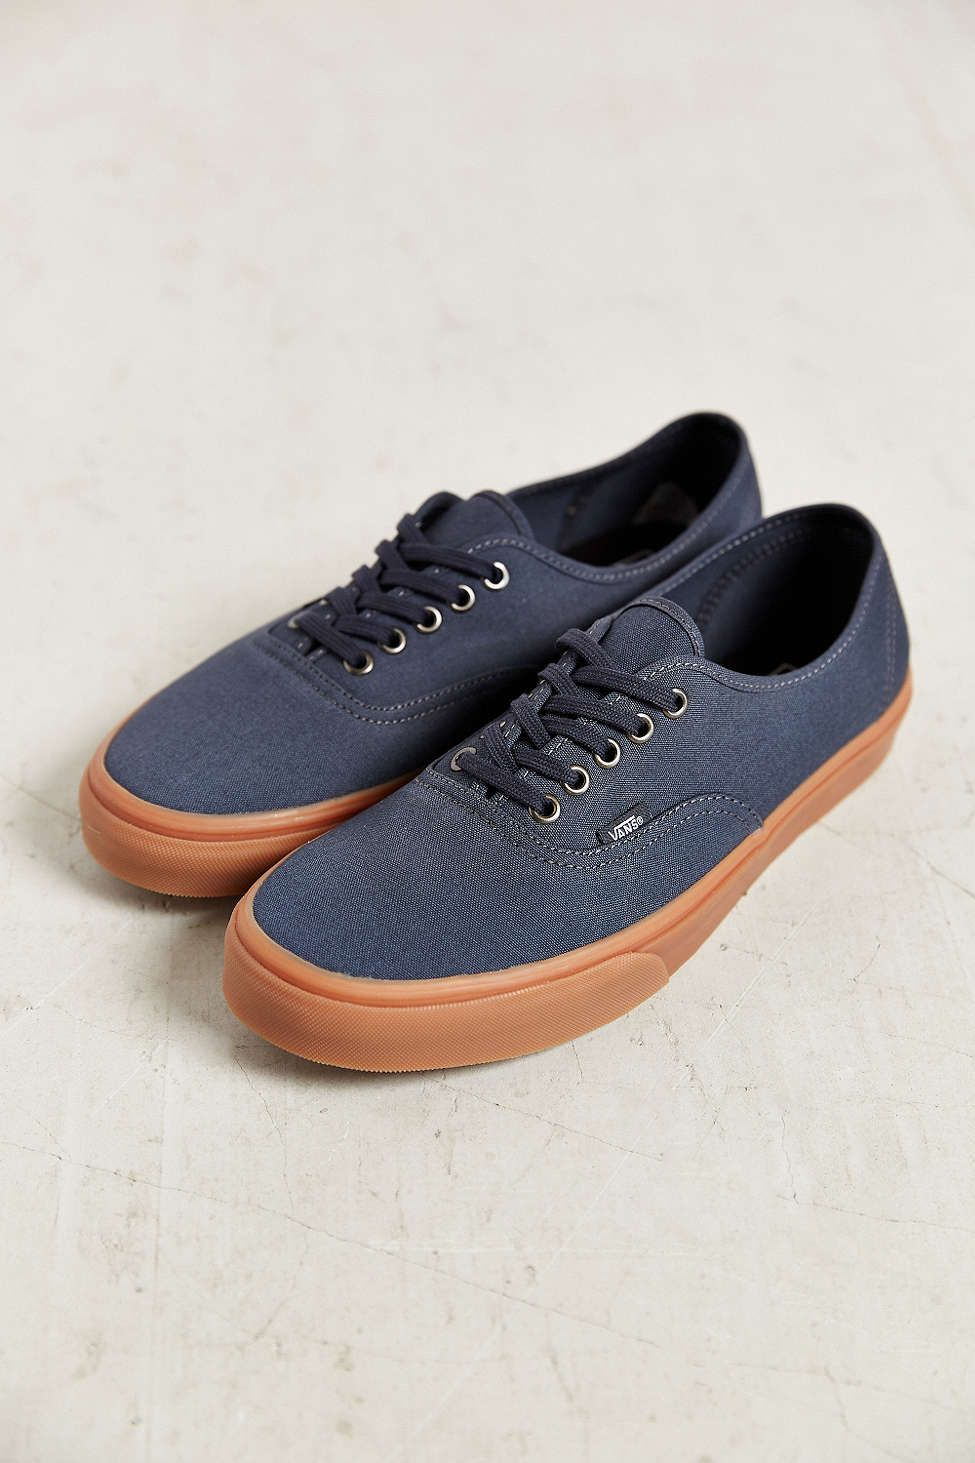 078b70ac69 Vans Authentic Gum-Sole Men s Sneaker Dark Blue Size 9.5  45 urban  outfitters